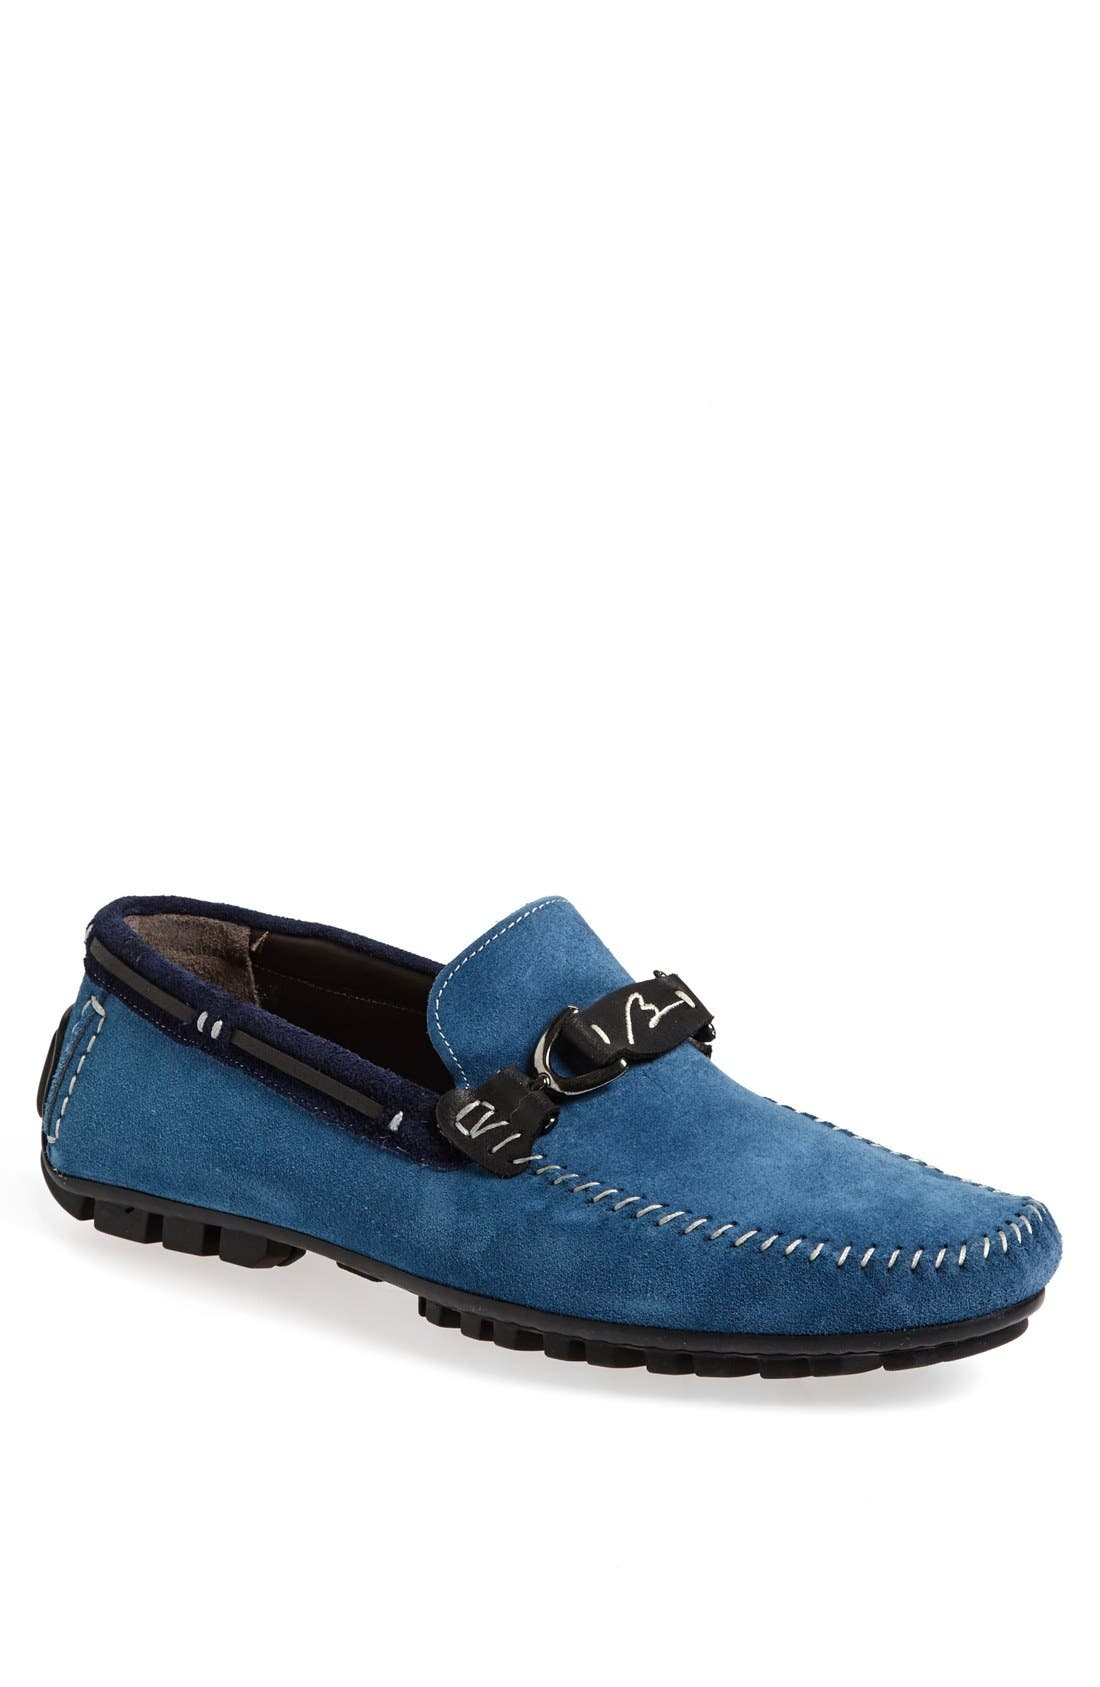 Alternate Image 1 Selected - Bacco Bucci 'Flavio' Driving Shoe (Men)